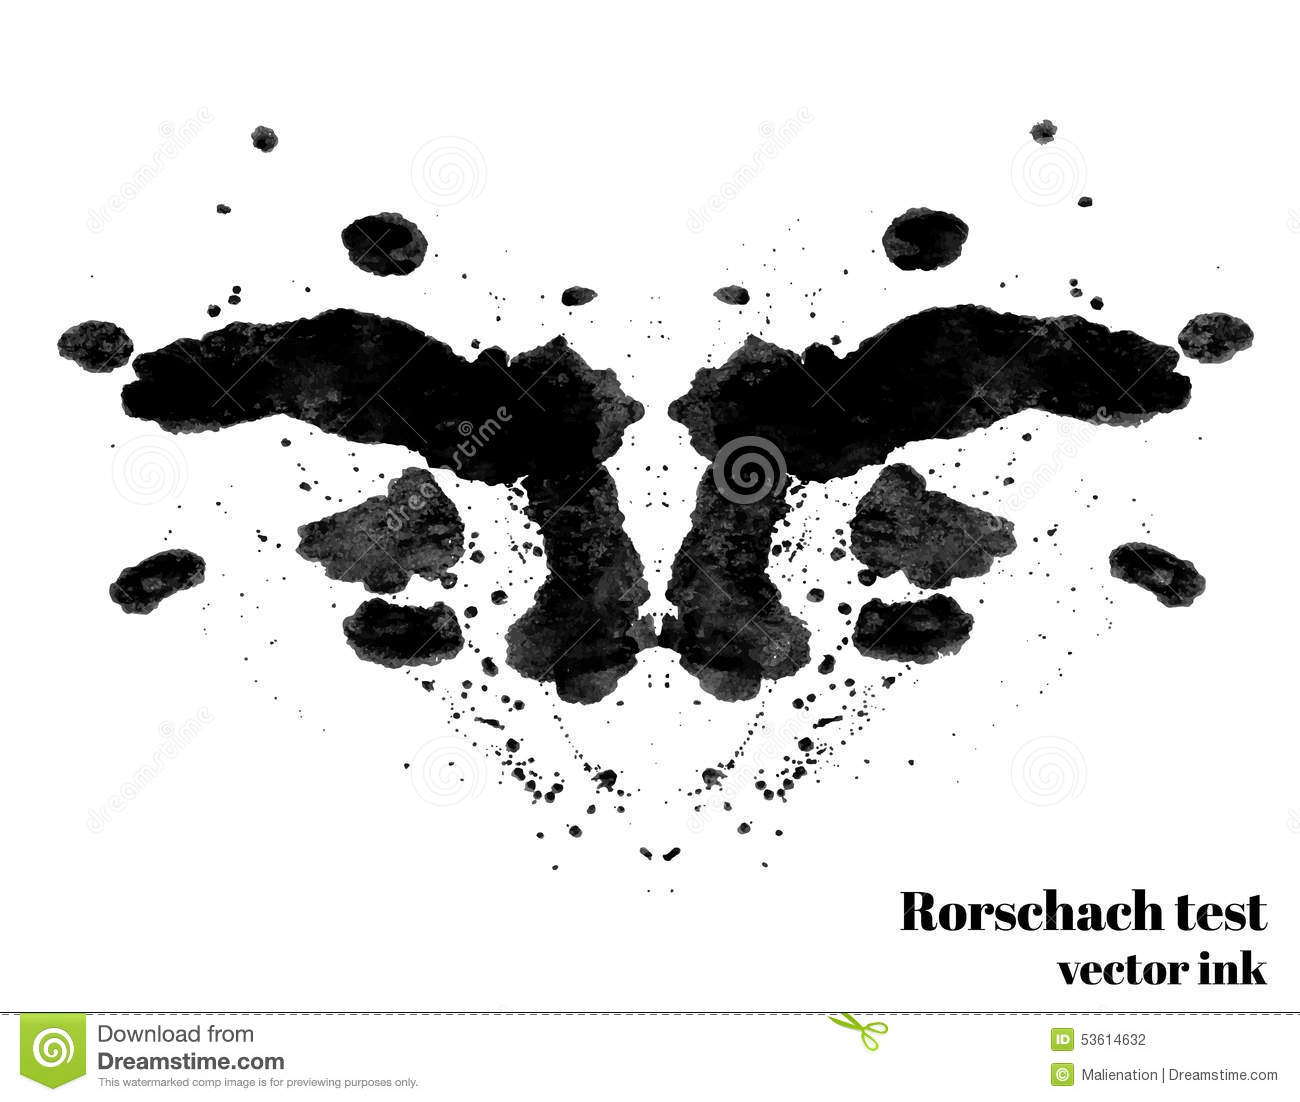 illustration de vecteur de tache d 39 encre d 39 essai de rorschach tache d 39 encre de silhouette de. Black Bedroom Furniture Sets. Home Design Ideas